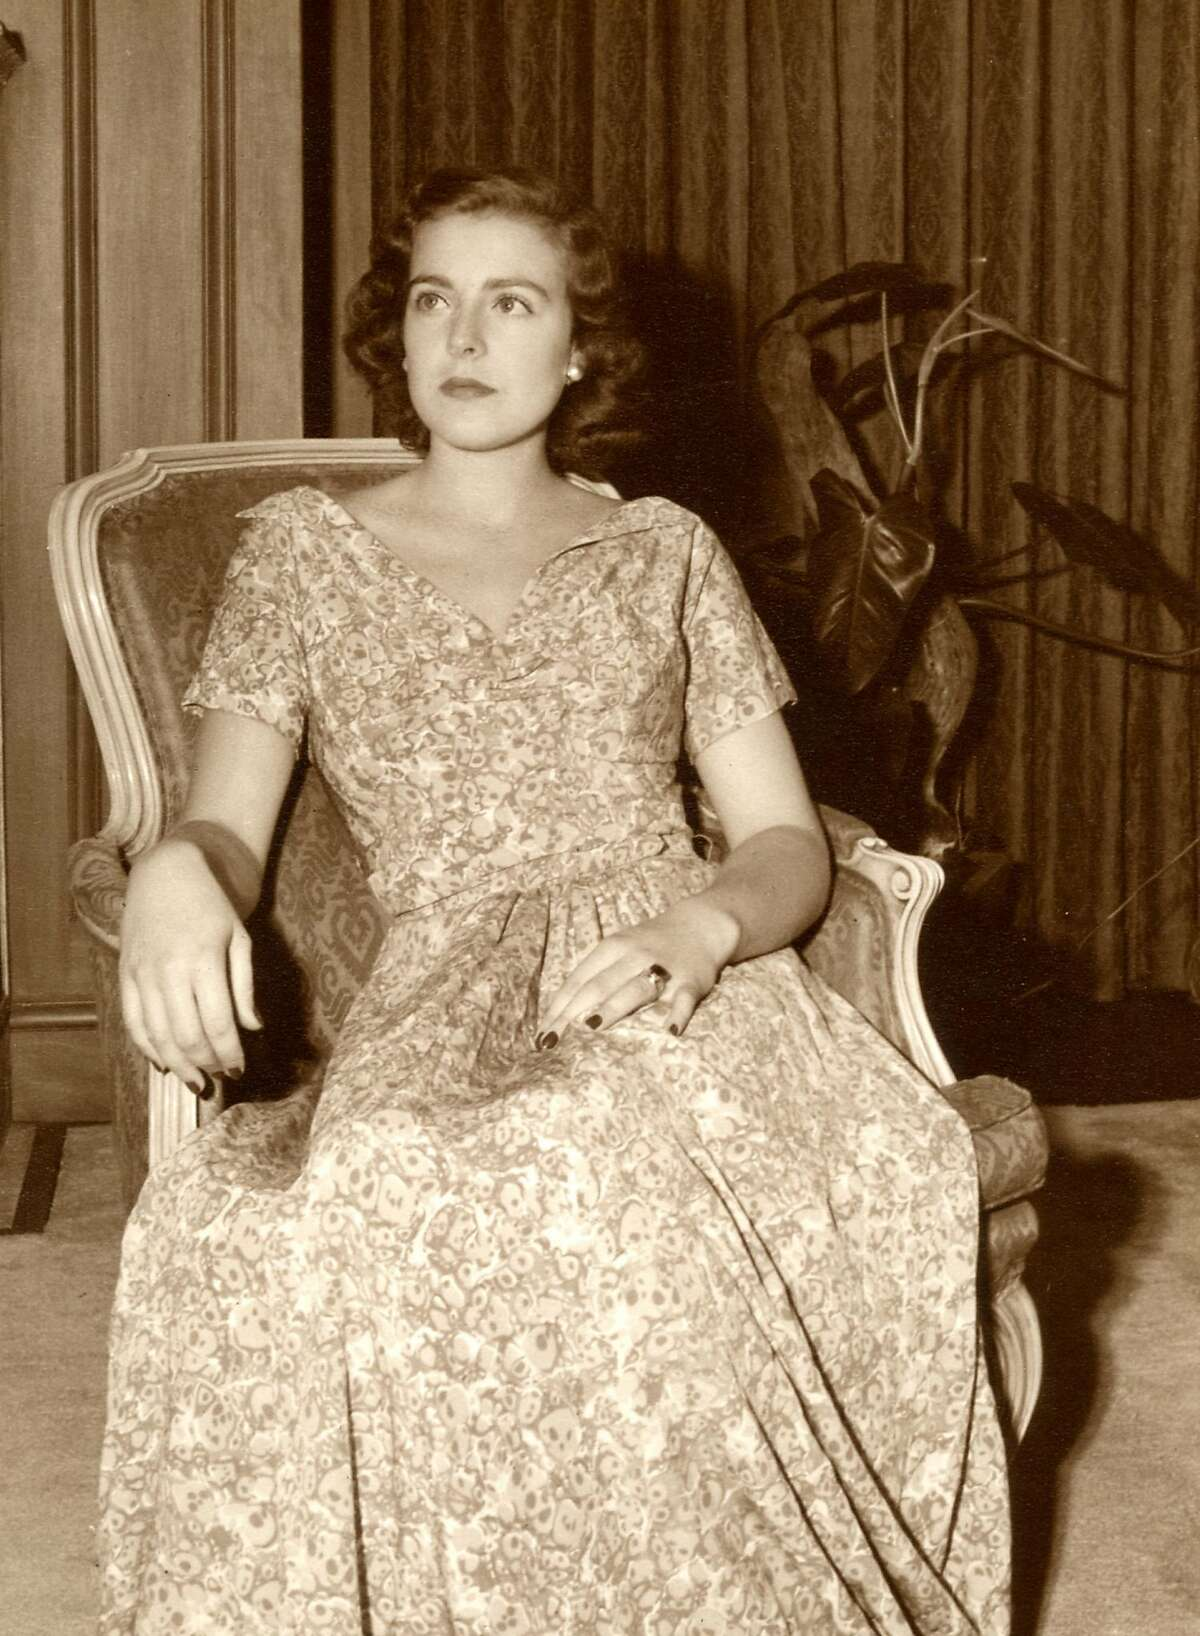 Ann Miller in 1948 as a young woman in San Francisco in her parents' home. (Courtesy the Miller Family)